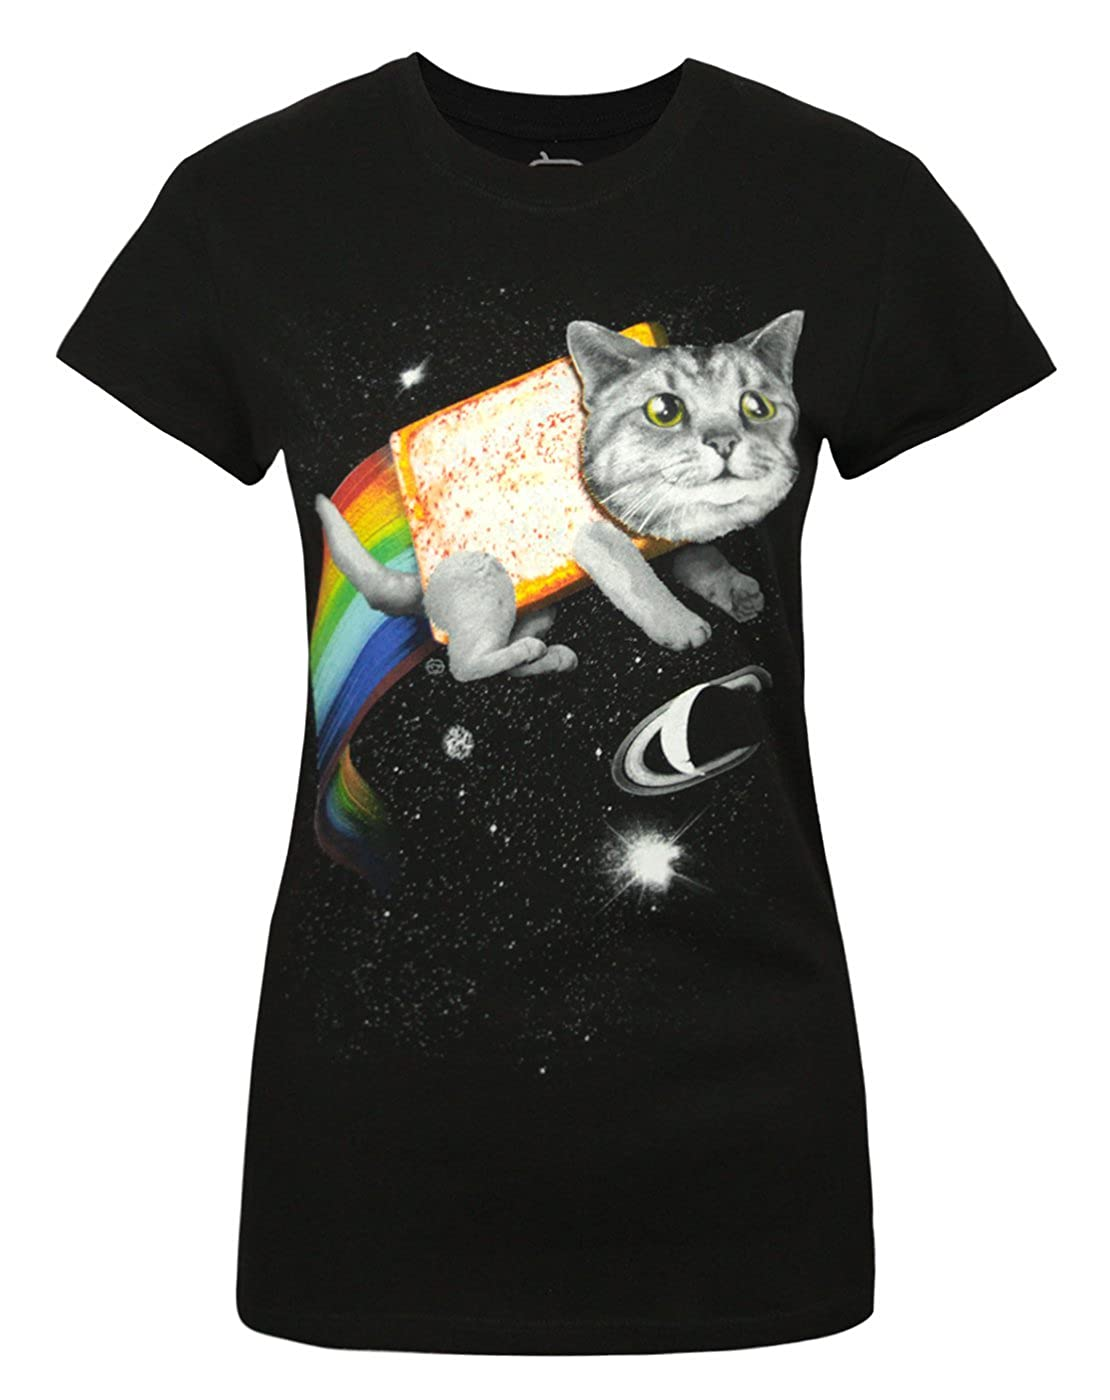 Mujeres - Goodie Two Sleeves - Space Cat - Camiseta (L): Amazon.es: Ropa y accesorios